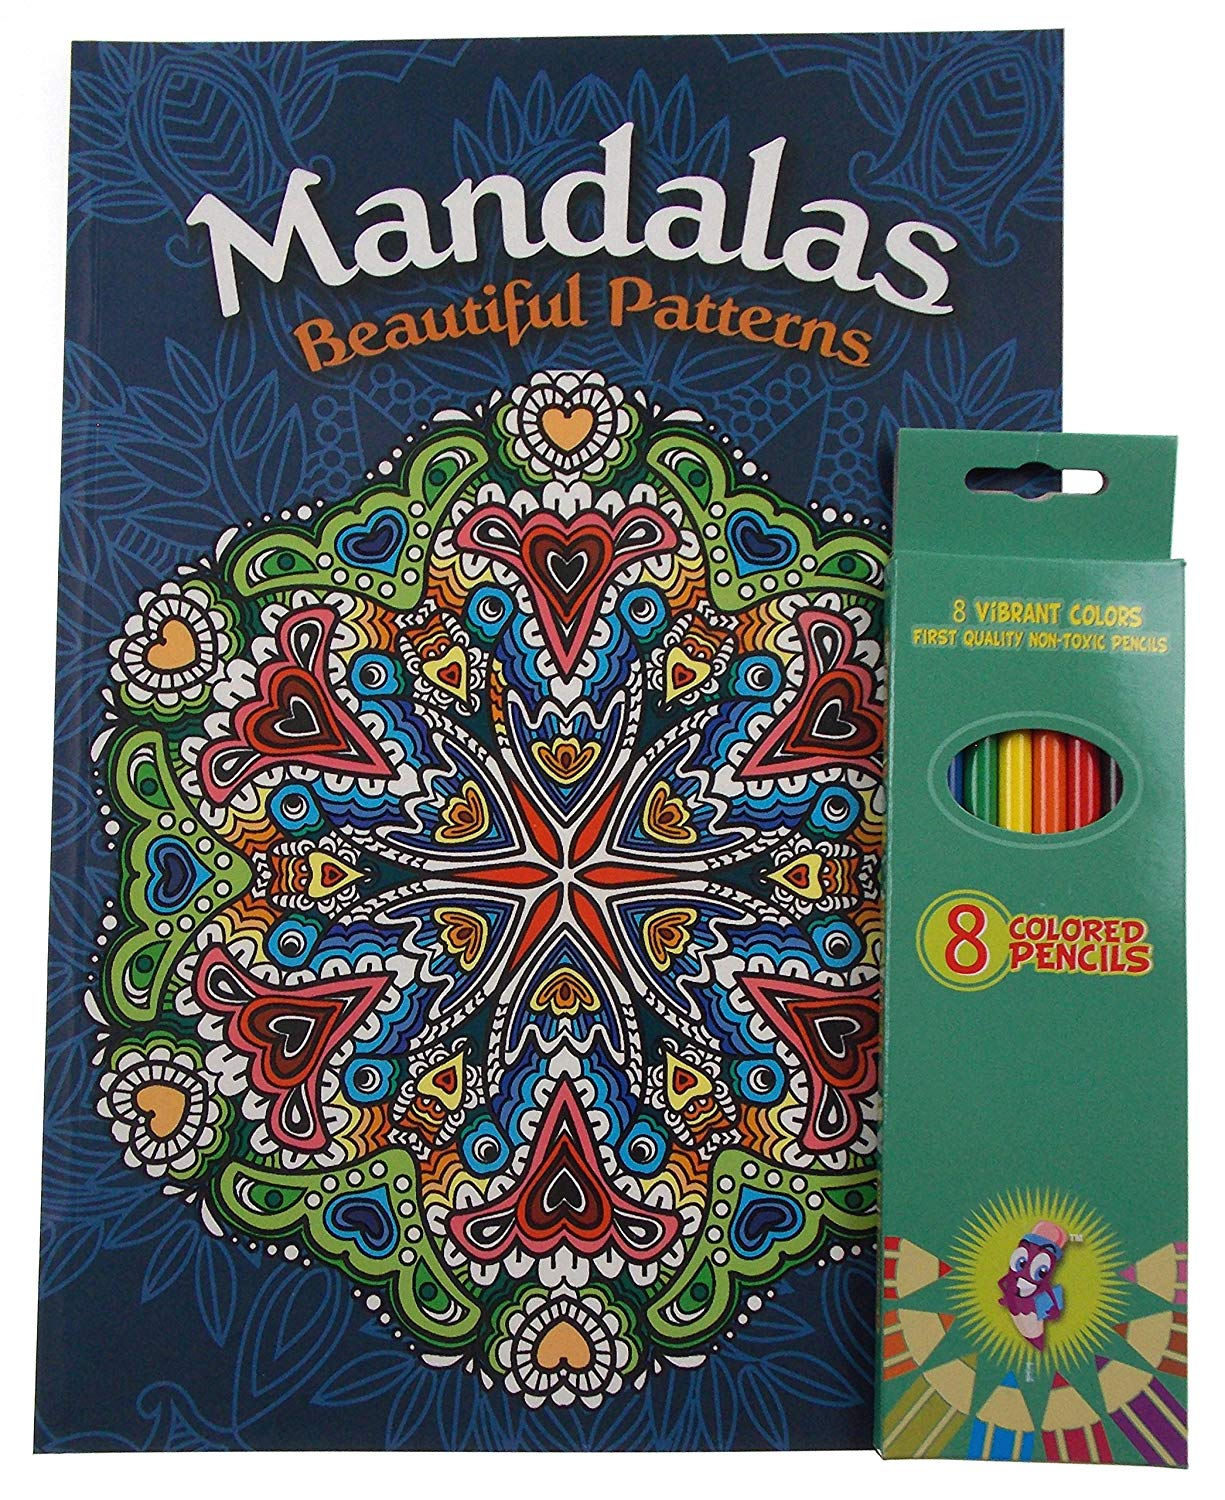 Mandalas Beautiful Patterns Adult and Teen Coloring Book Bundled With Vibrant Colored Pencils